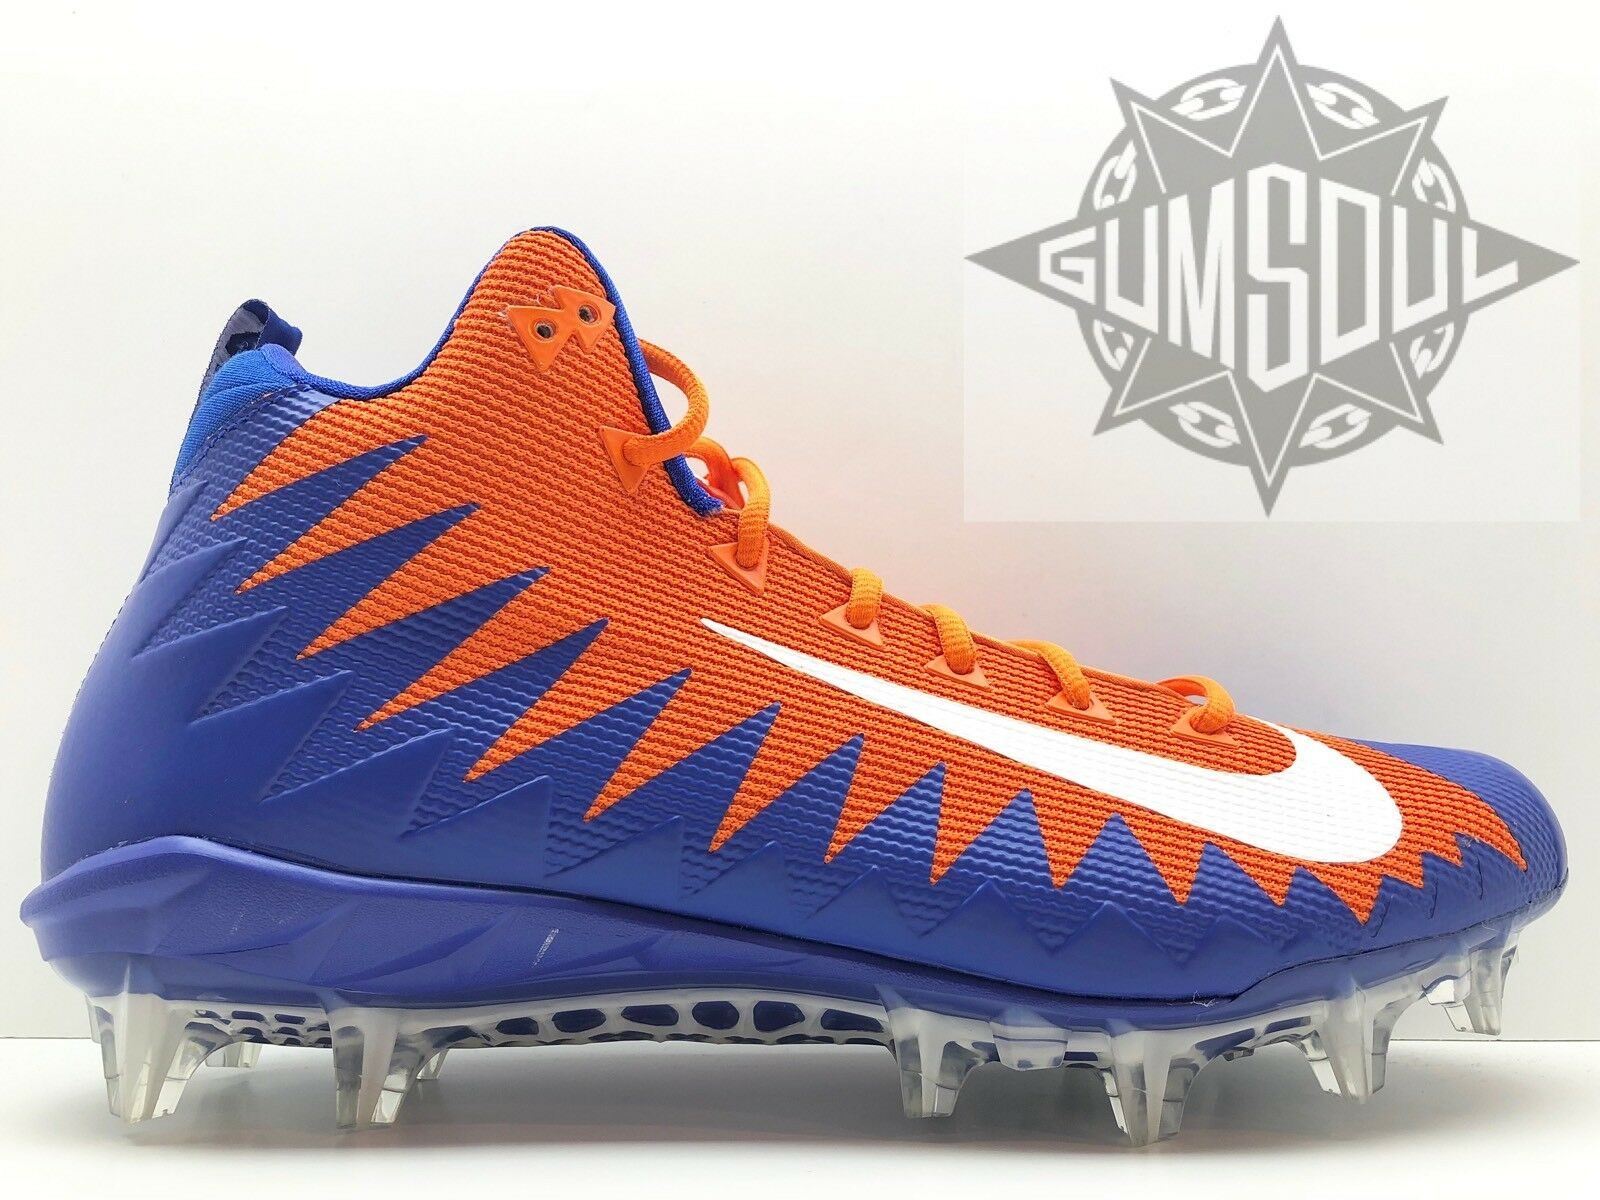 NIKE ALPHA MENACE PRO MID FOOTBALL CLEATS BLUE ORANGE GATORS 884527 sz 13